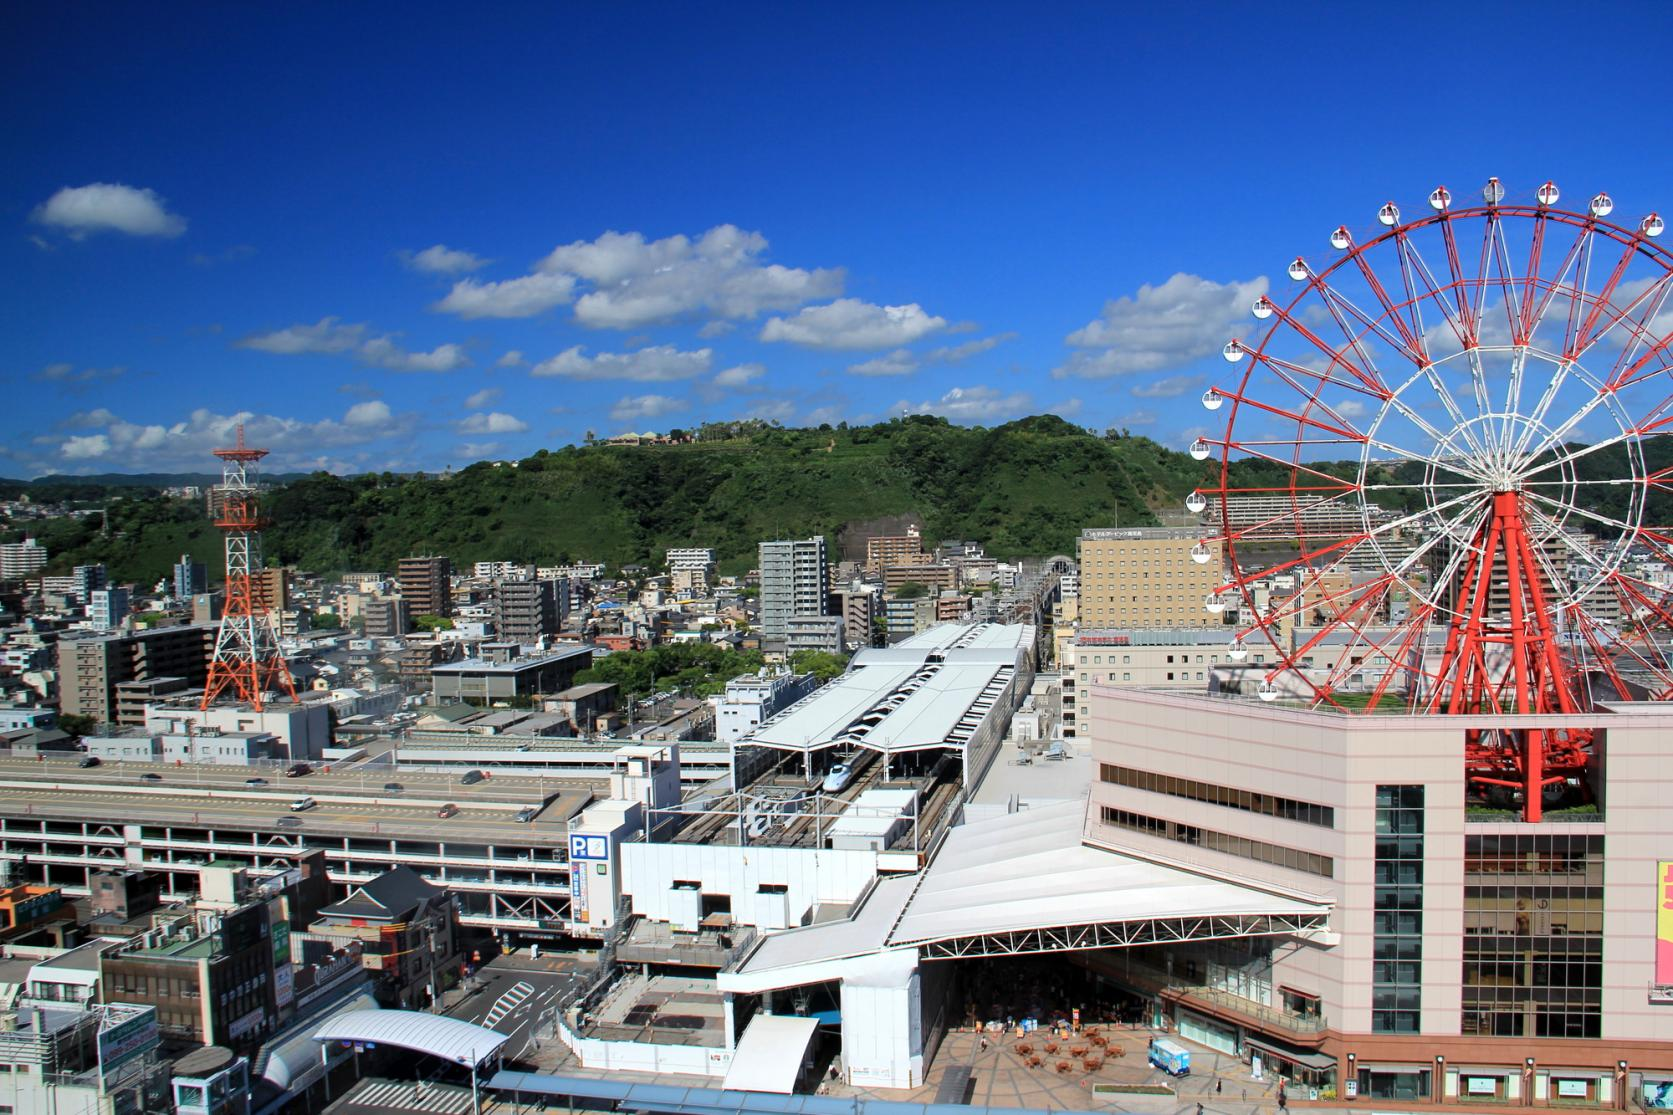 The hop-on hop-off Kagoshima City View buses are convenient for sightseeing in the City.-1